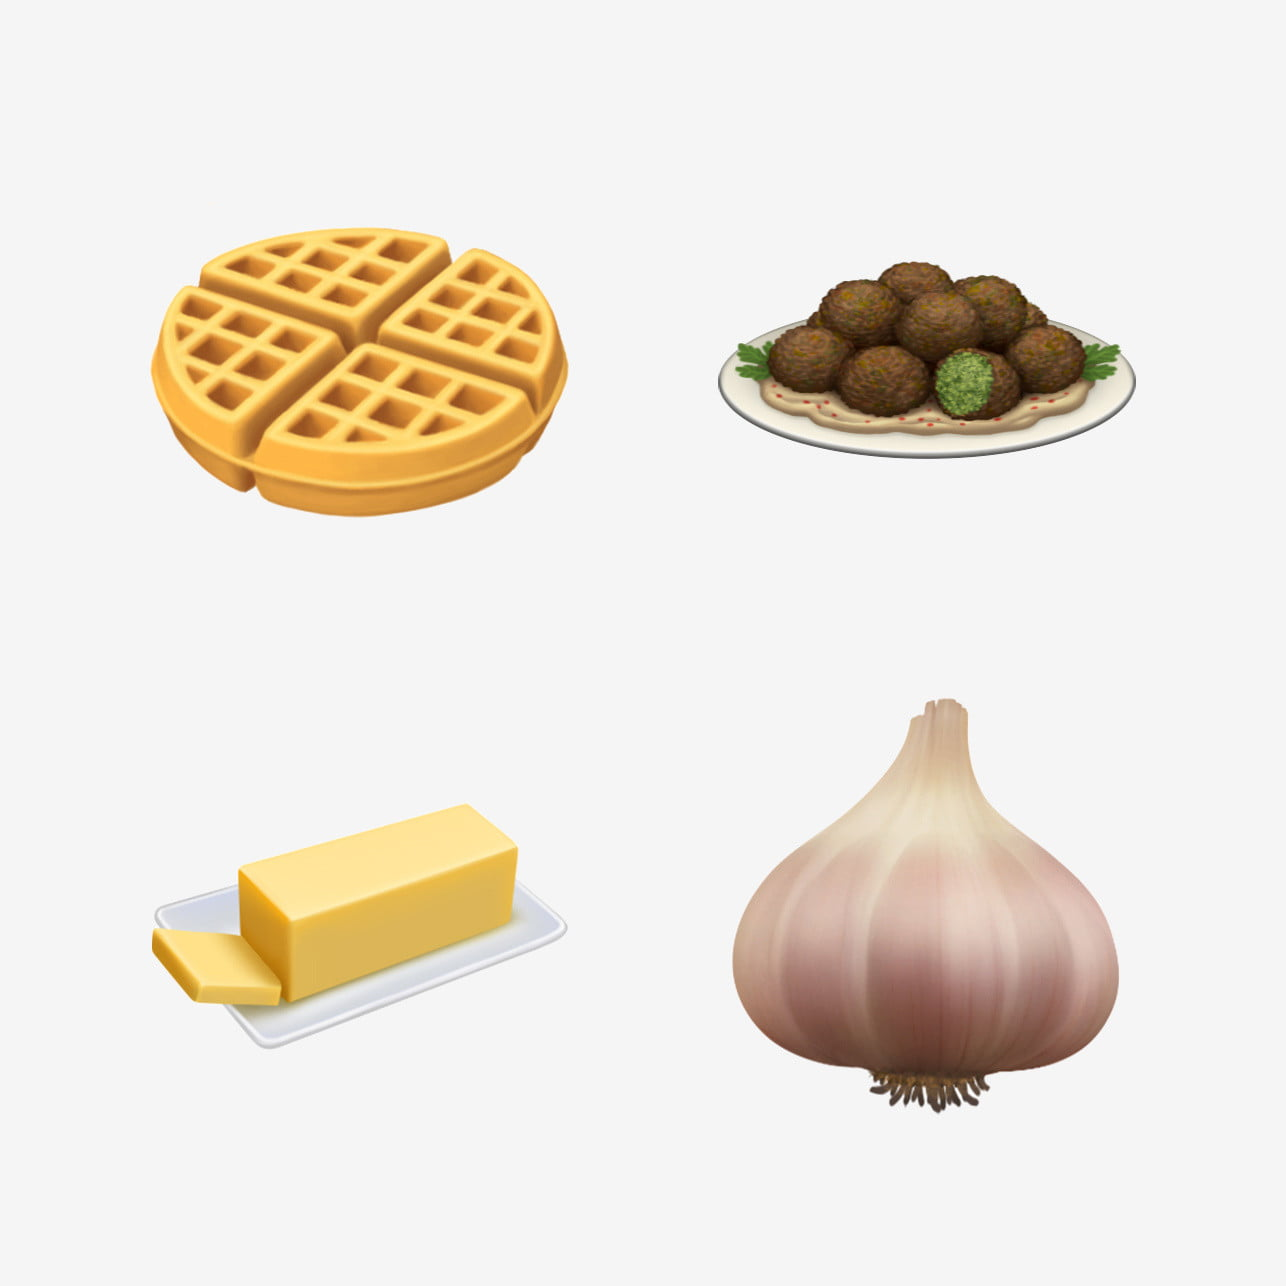 Here Are the New Emojis Coming to Android and iPhone This